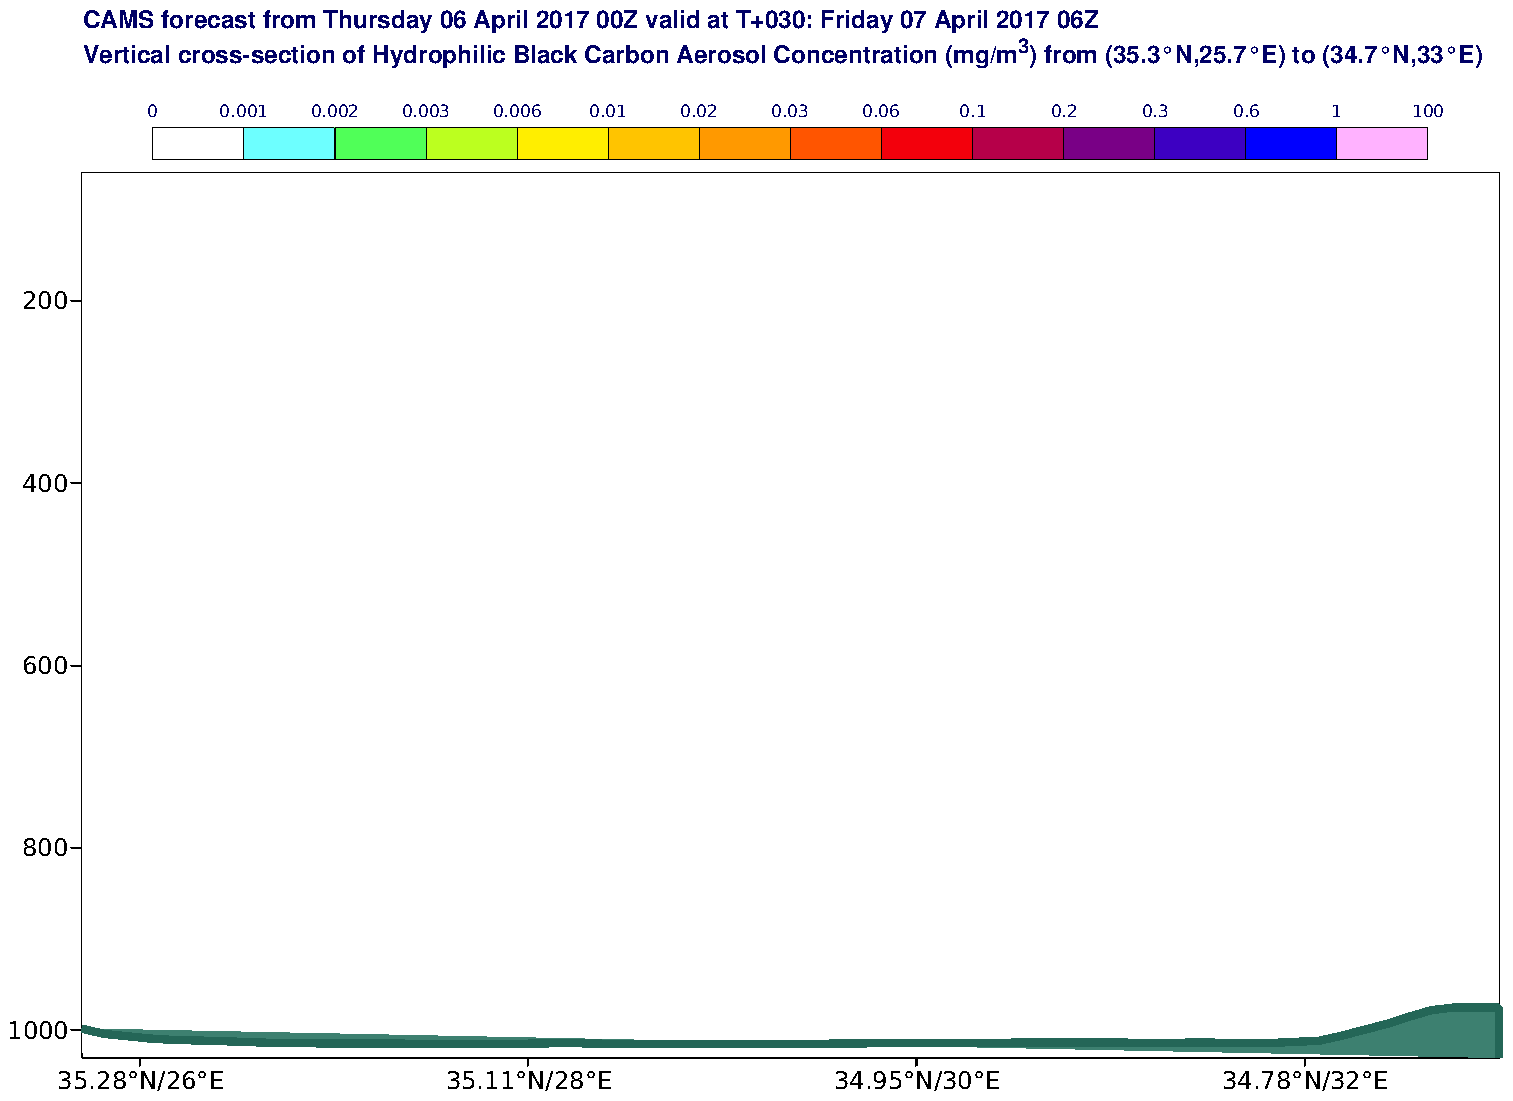 Vertical cross-section of Hydrophilic Black Carbon Aerosol Concentration (mg/m3) valid at T30 - 2017-04-07 06:00